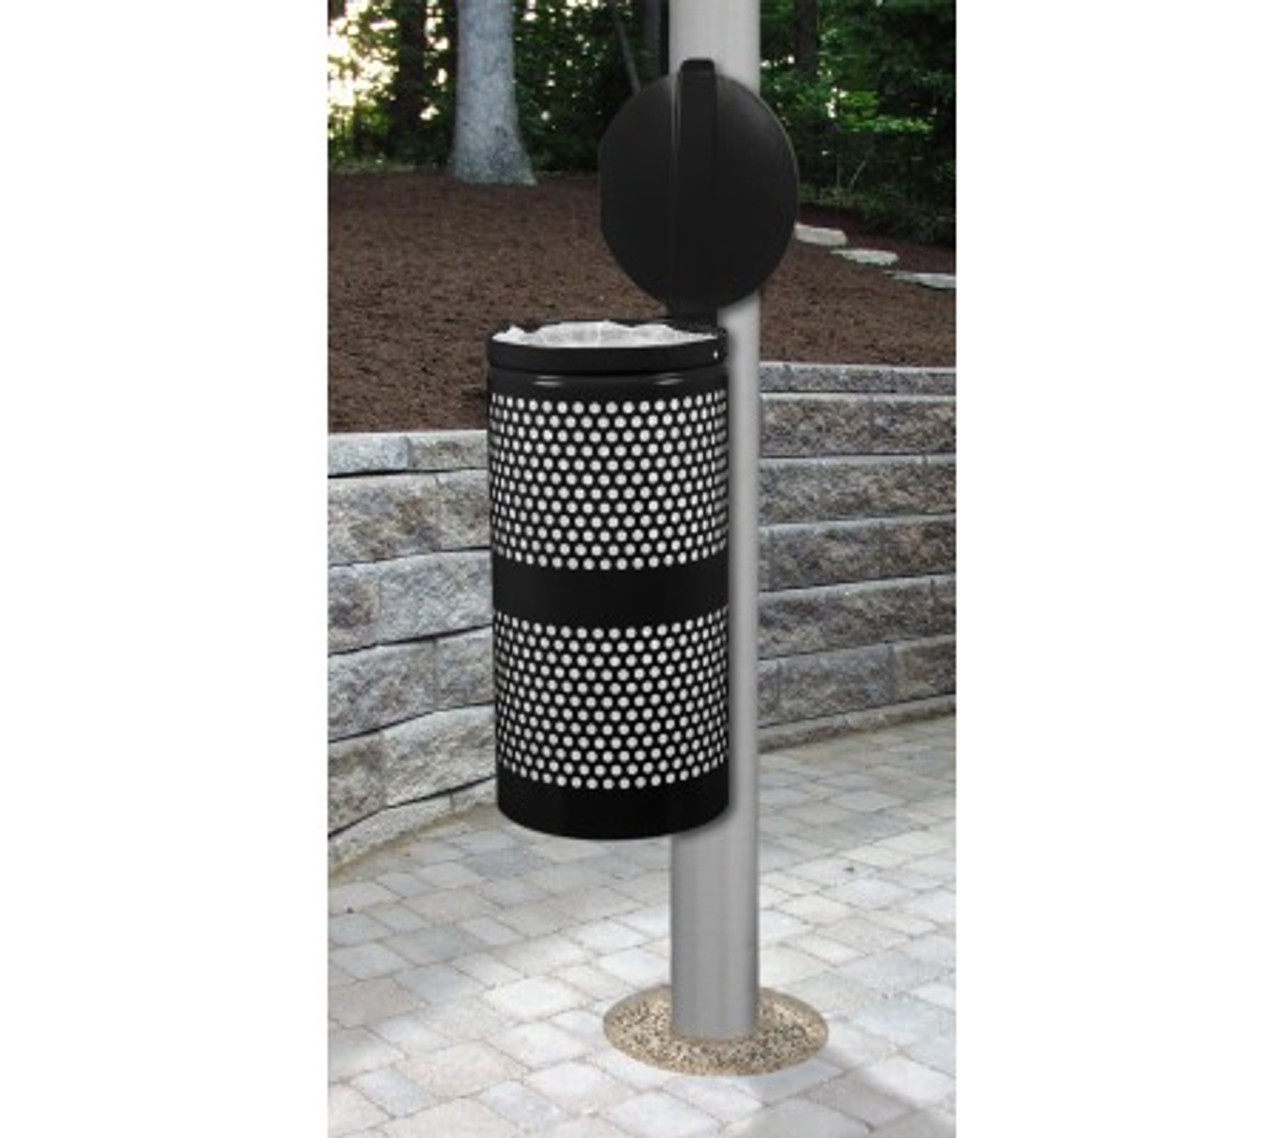 Can be Pole Mounted like this  WR-10R-CVR Shown in Black with Optional Mounting Bracket B-1022